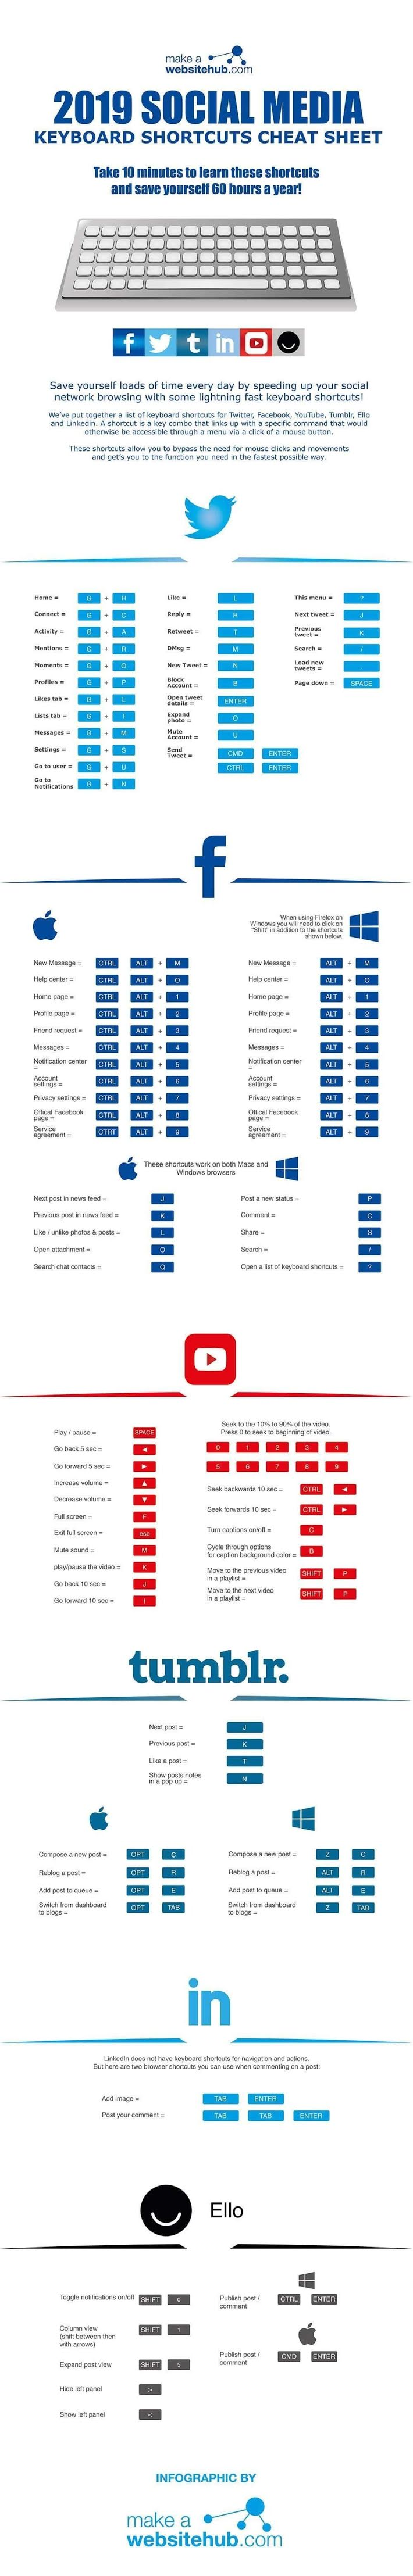 2019 Social Media Keyboard Shortcuts #infographic